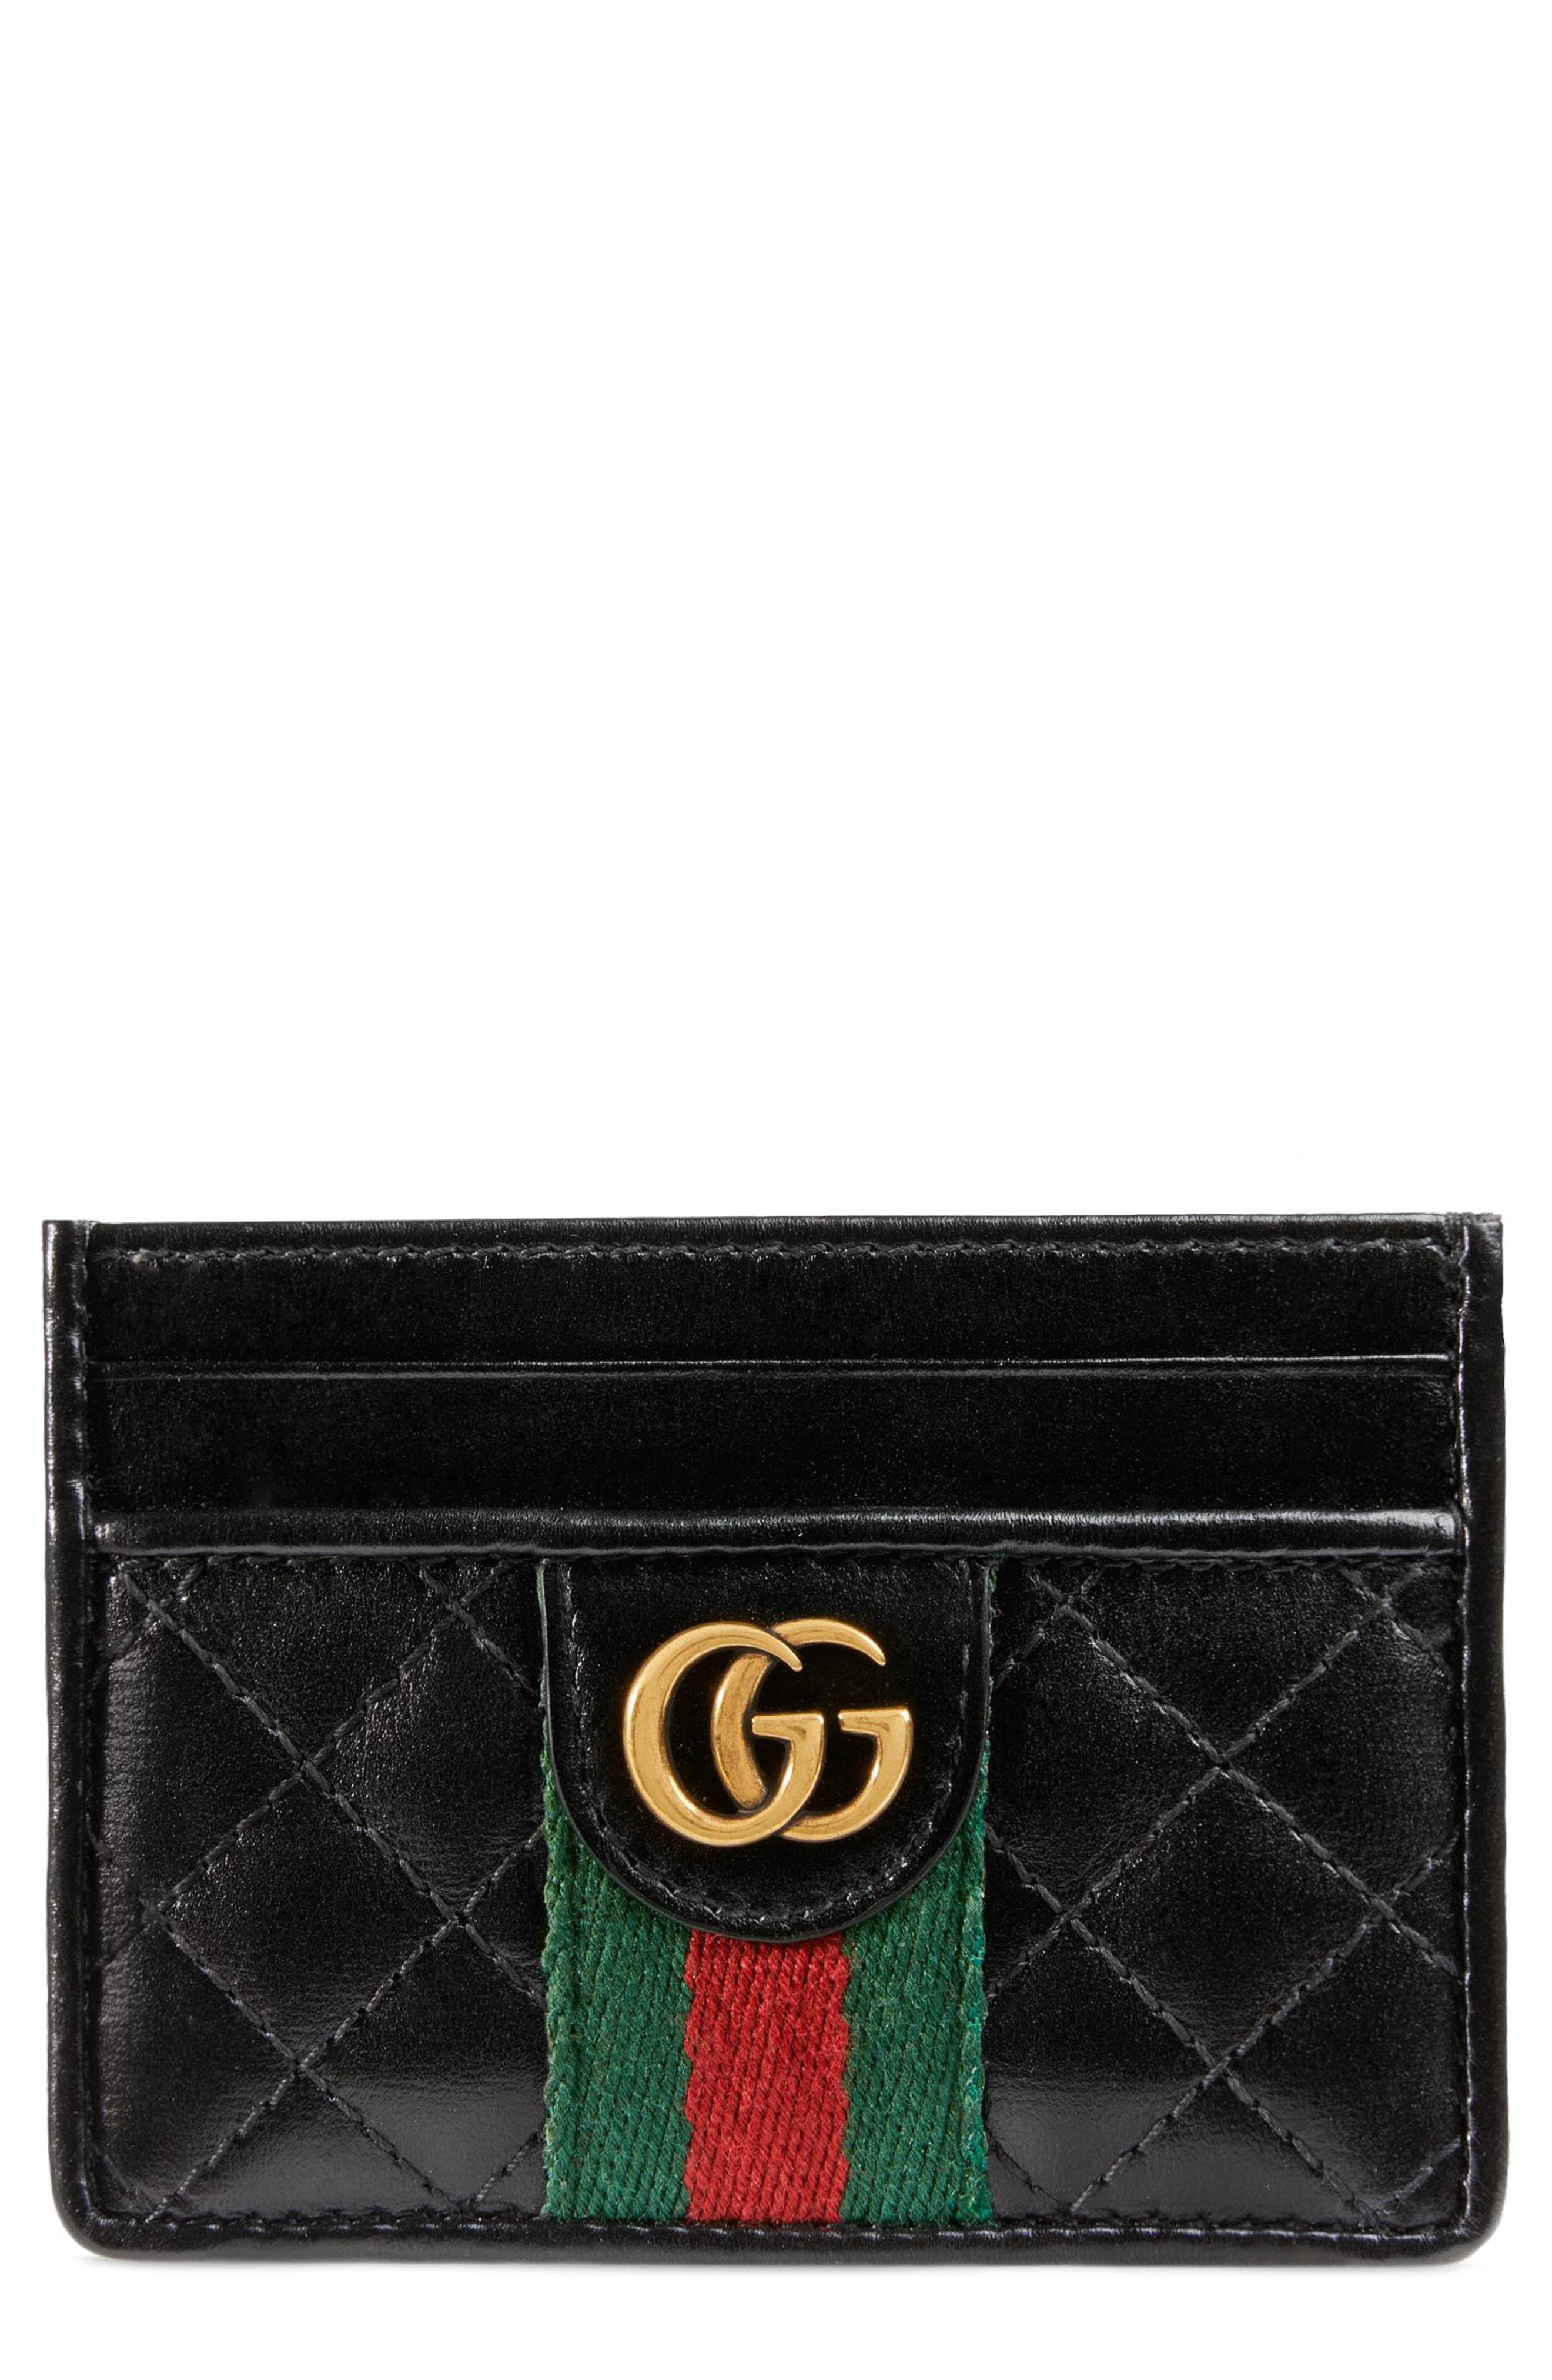 6d36622570 Lyst - Gucci Leather Card Case With Double G in Black